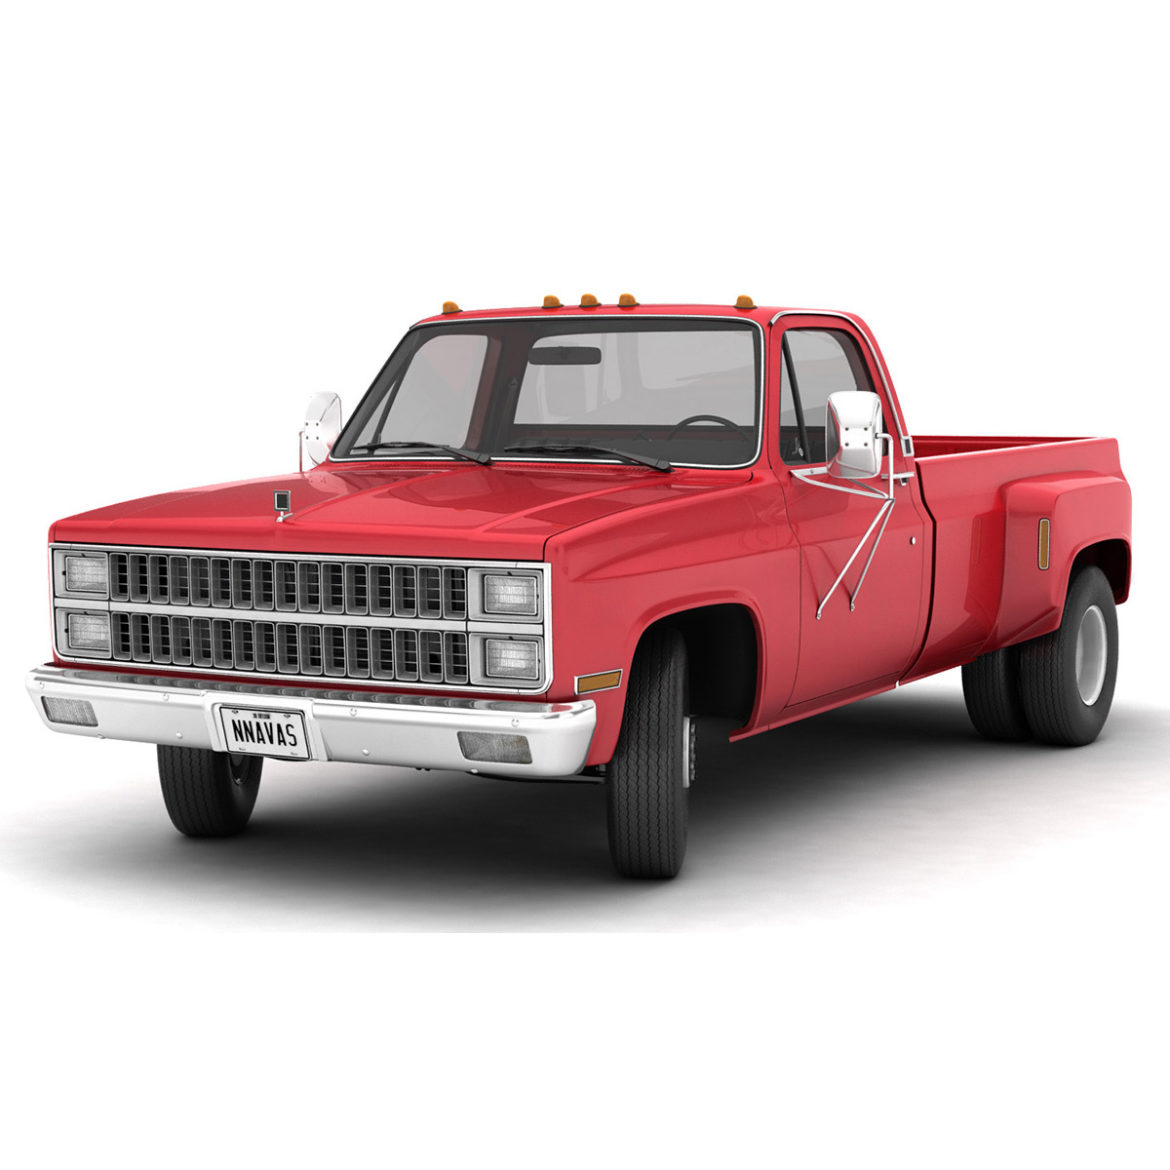 generic dually pickup truck 2 3d model 3ds max fbx obj 304043